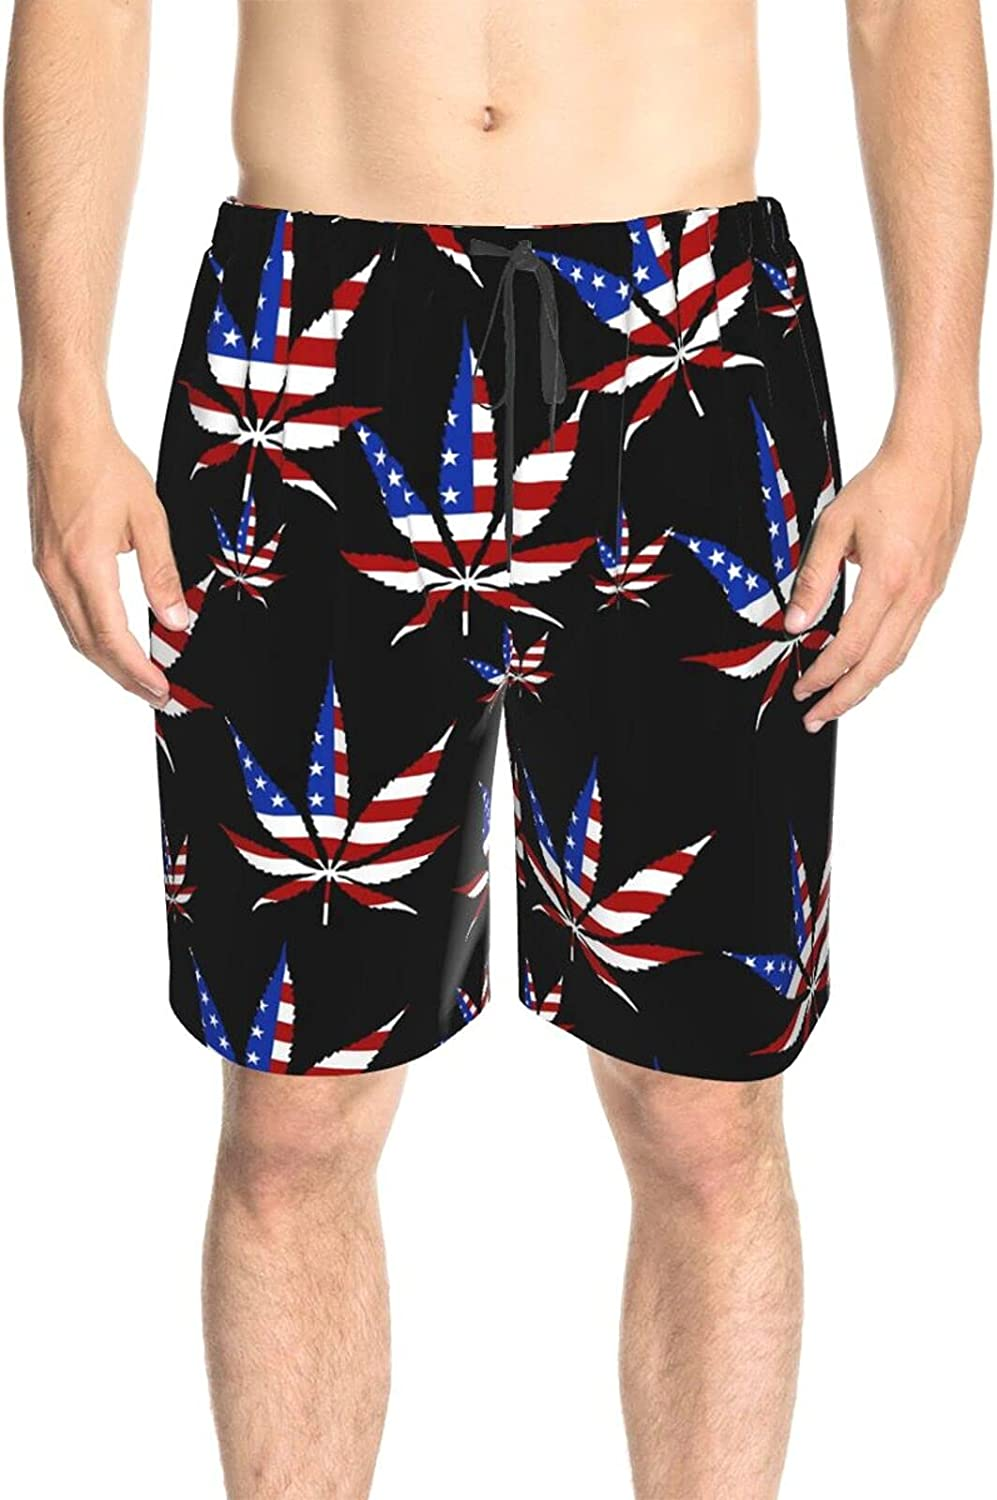 JINJUELS Mens Swim Trunks Weed Leaves American Flag Swim Board Shorts Quick Dry Cool Summer Beach Shorts with Liner